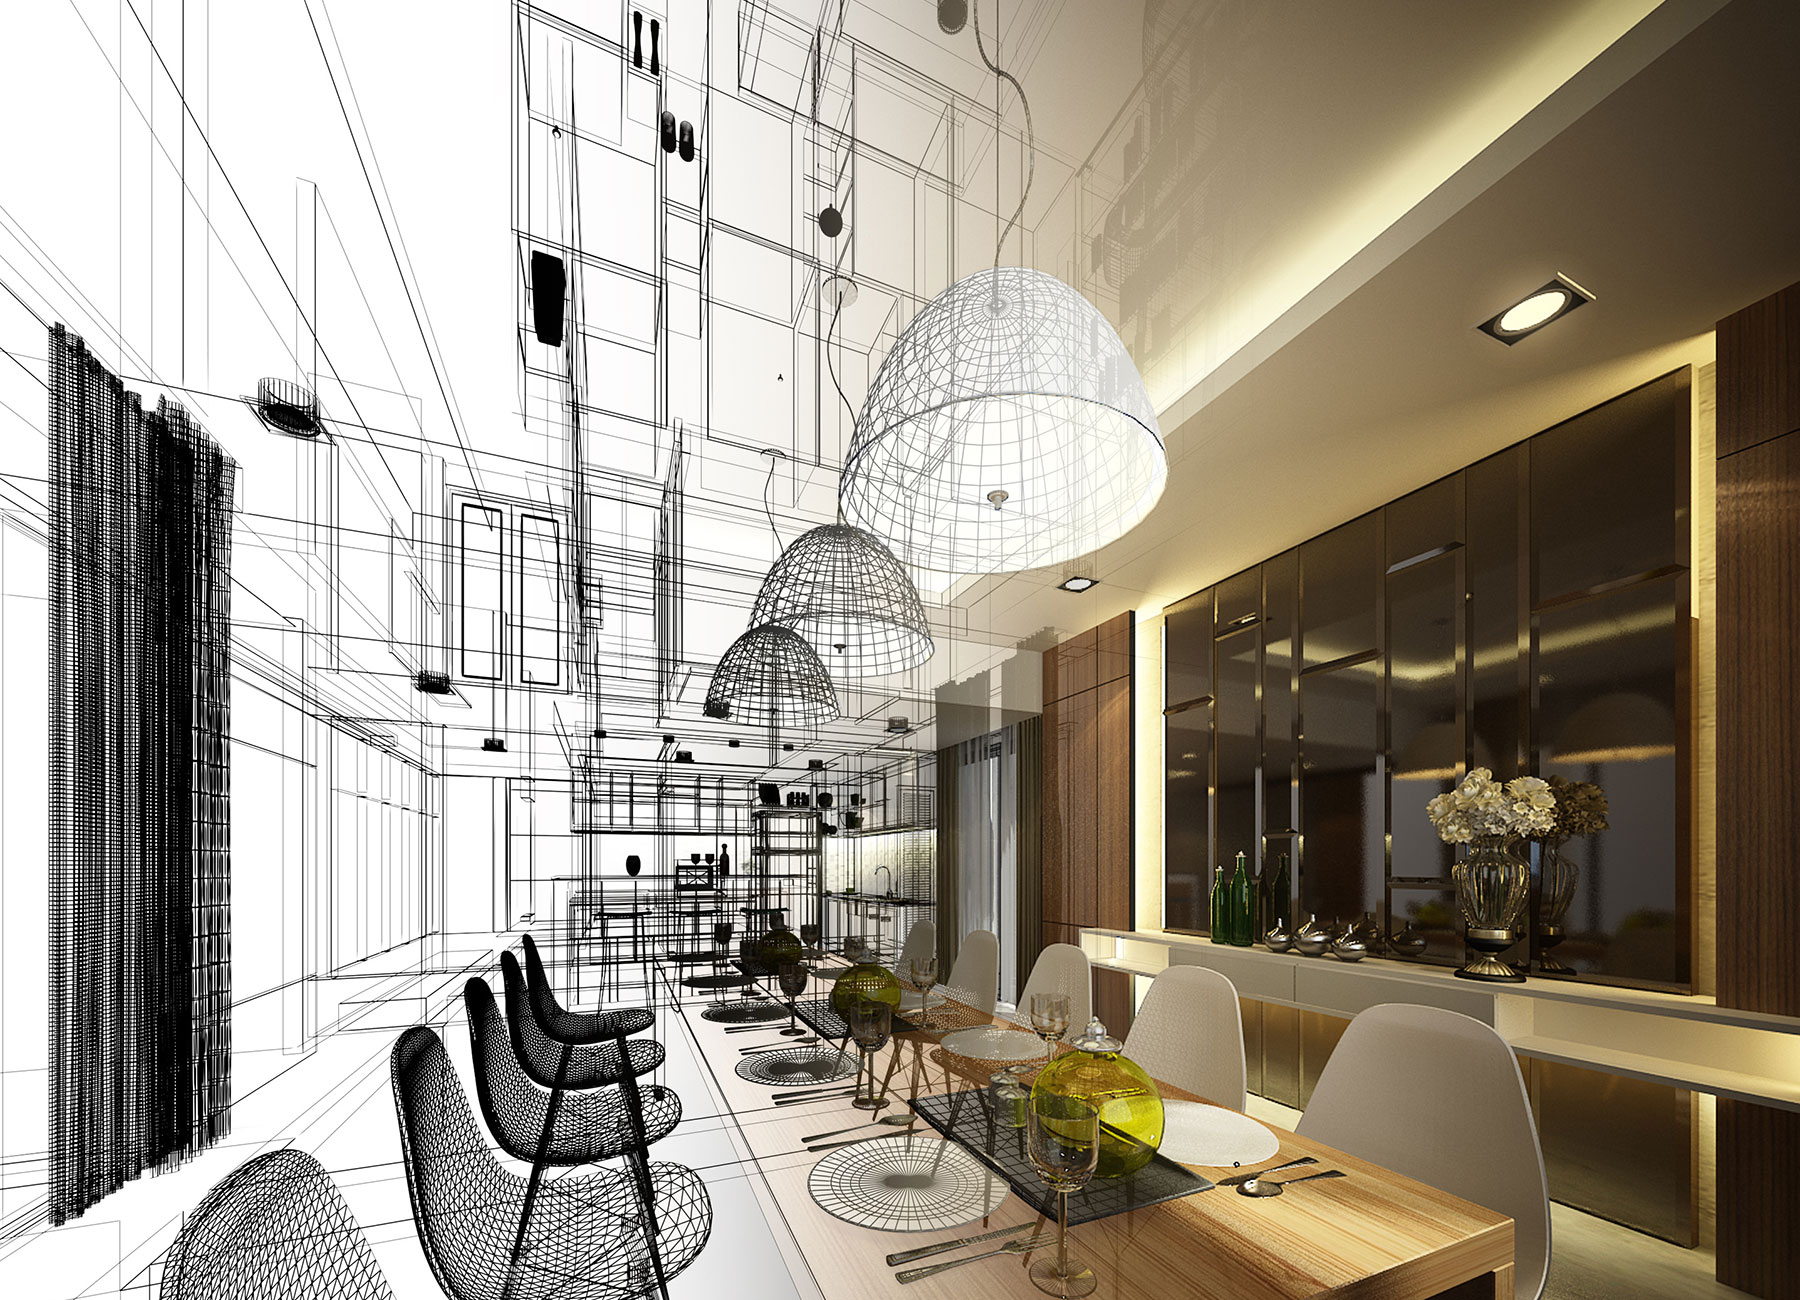 Design Interieur Architecture Luxury Interior Design For Commercial Interiors By